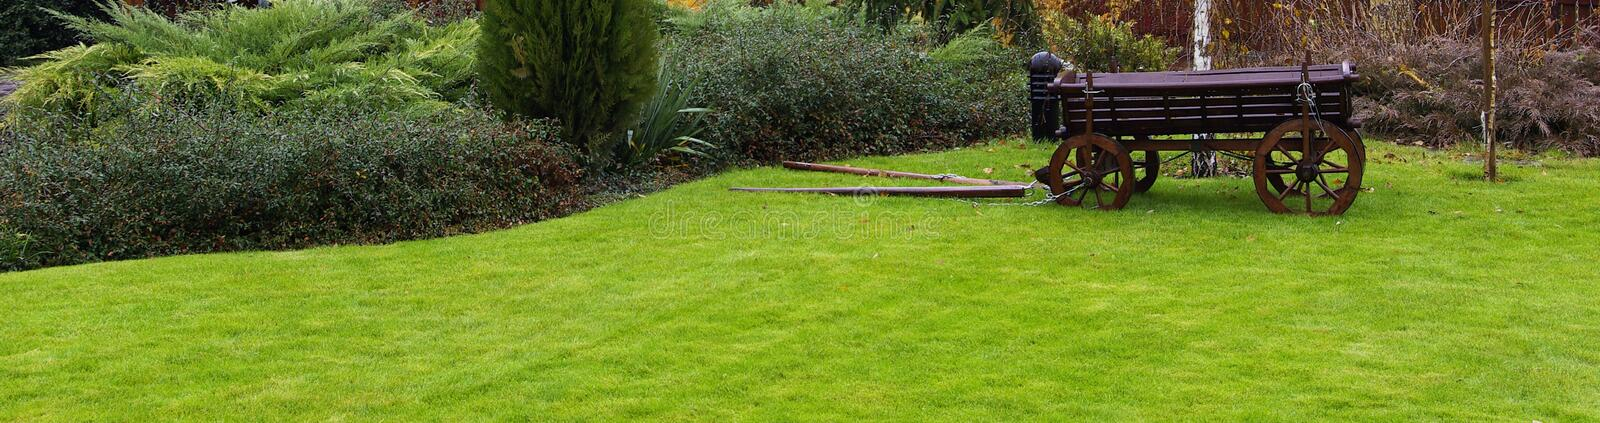 Landscaping in the garden stock photos